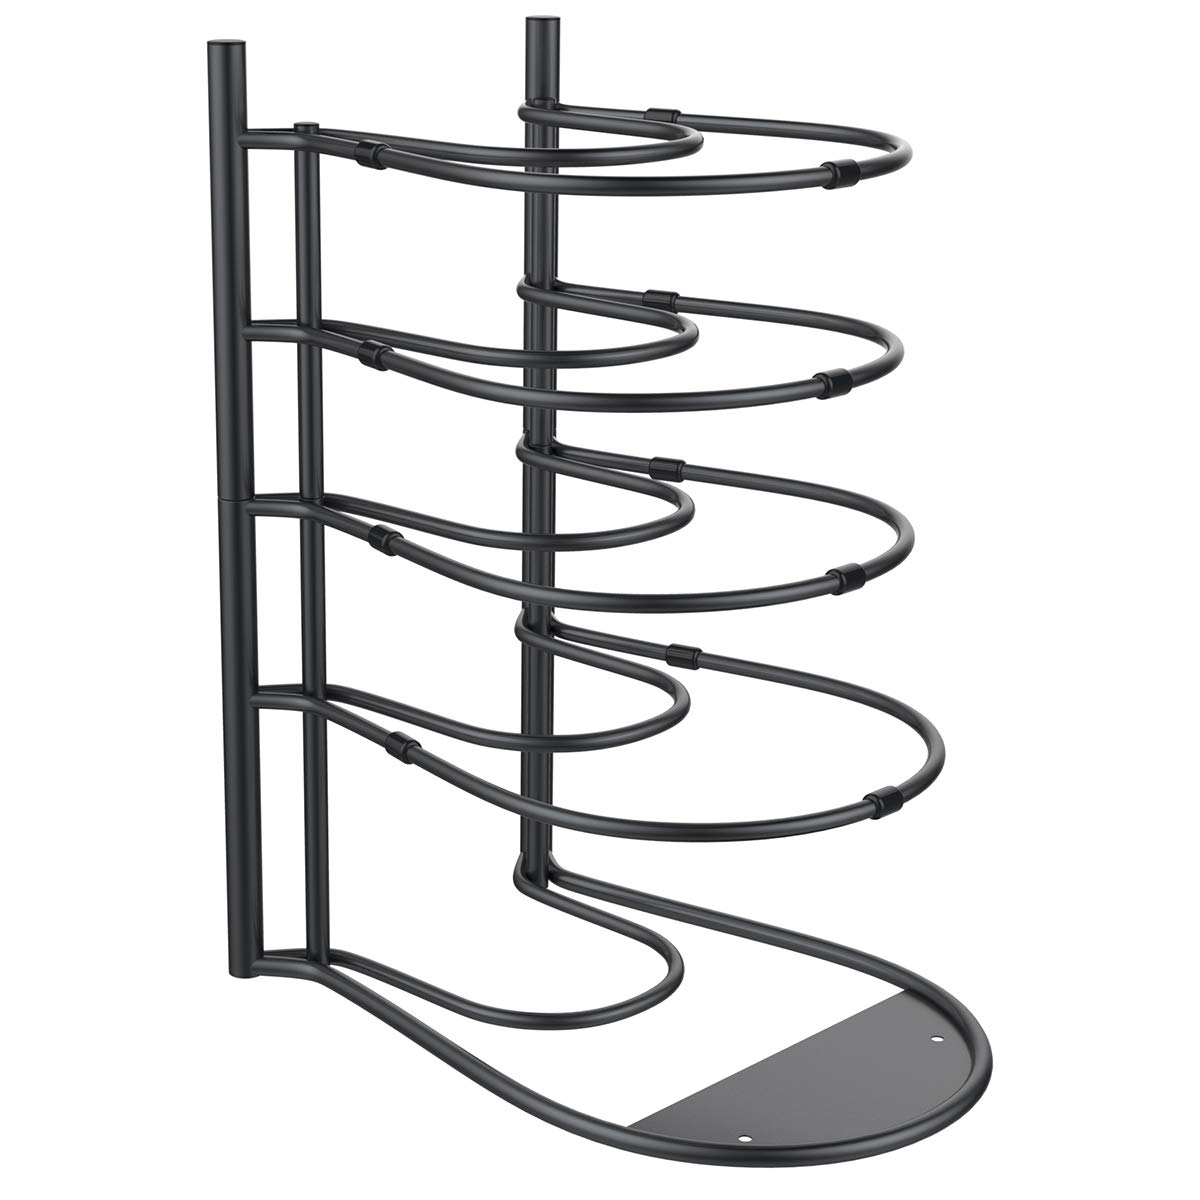 Pan Pot Lid Rack Organizer Shelf Heavy Duty, Kitchen Cabinet Cookware Rack Countertop Pantry Storage Holder, Black (Upgraded version) by WOSOVO (Image #2)